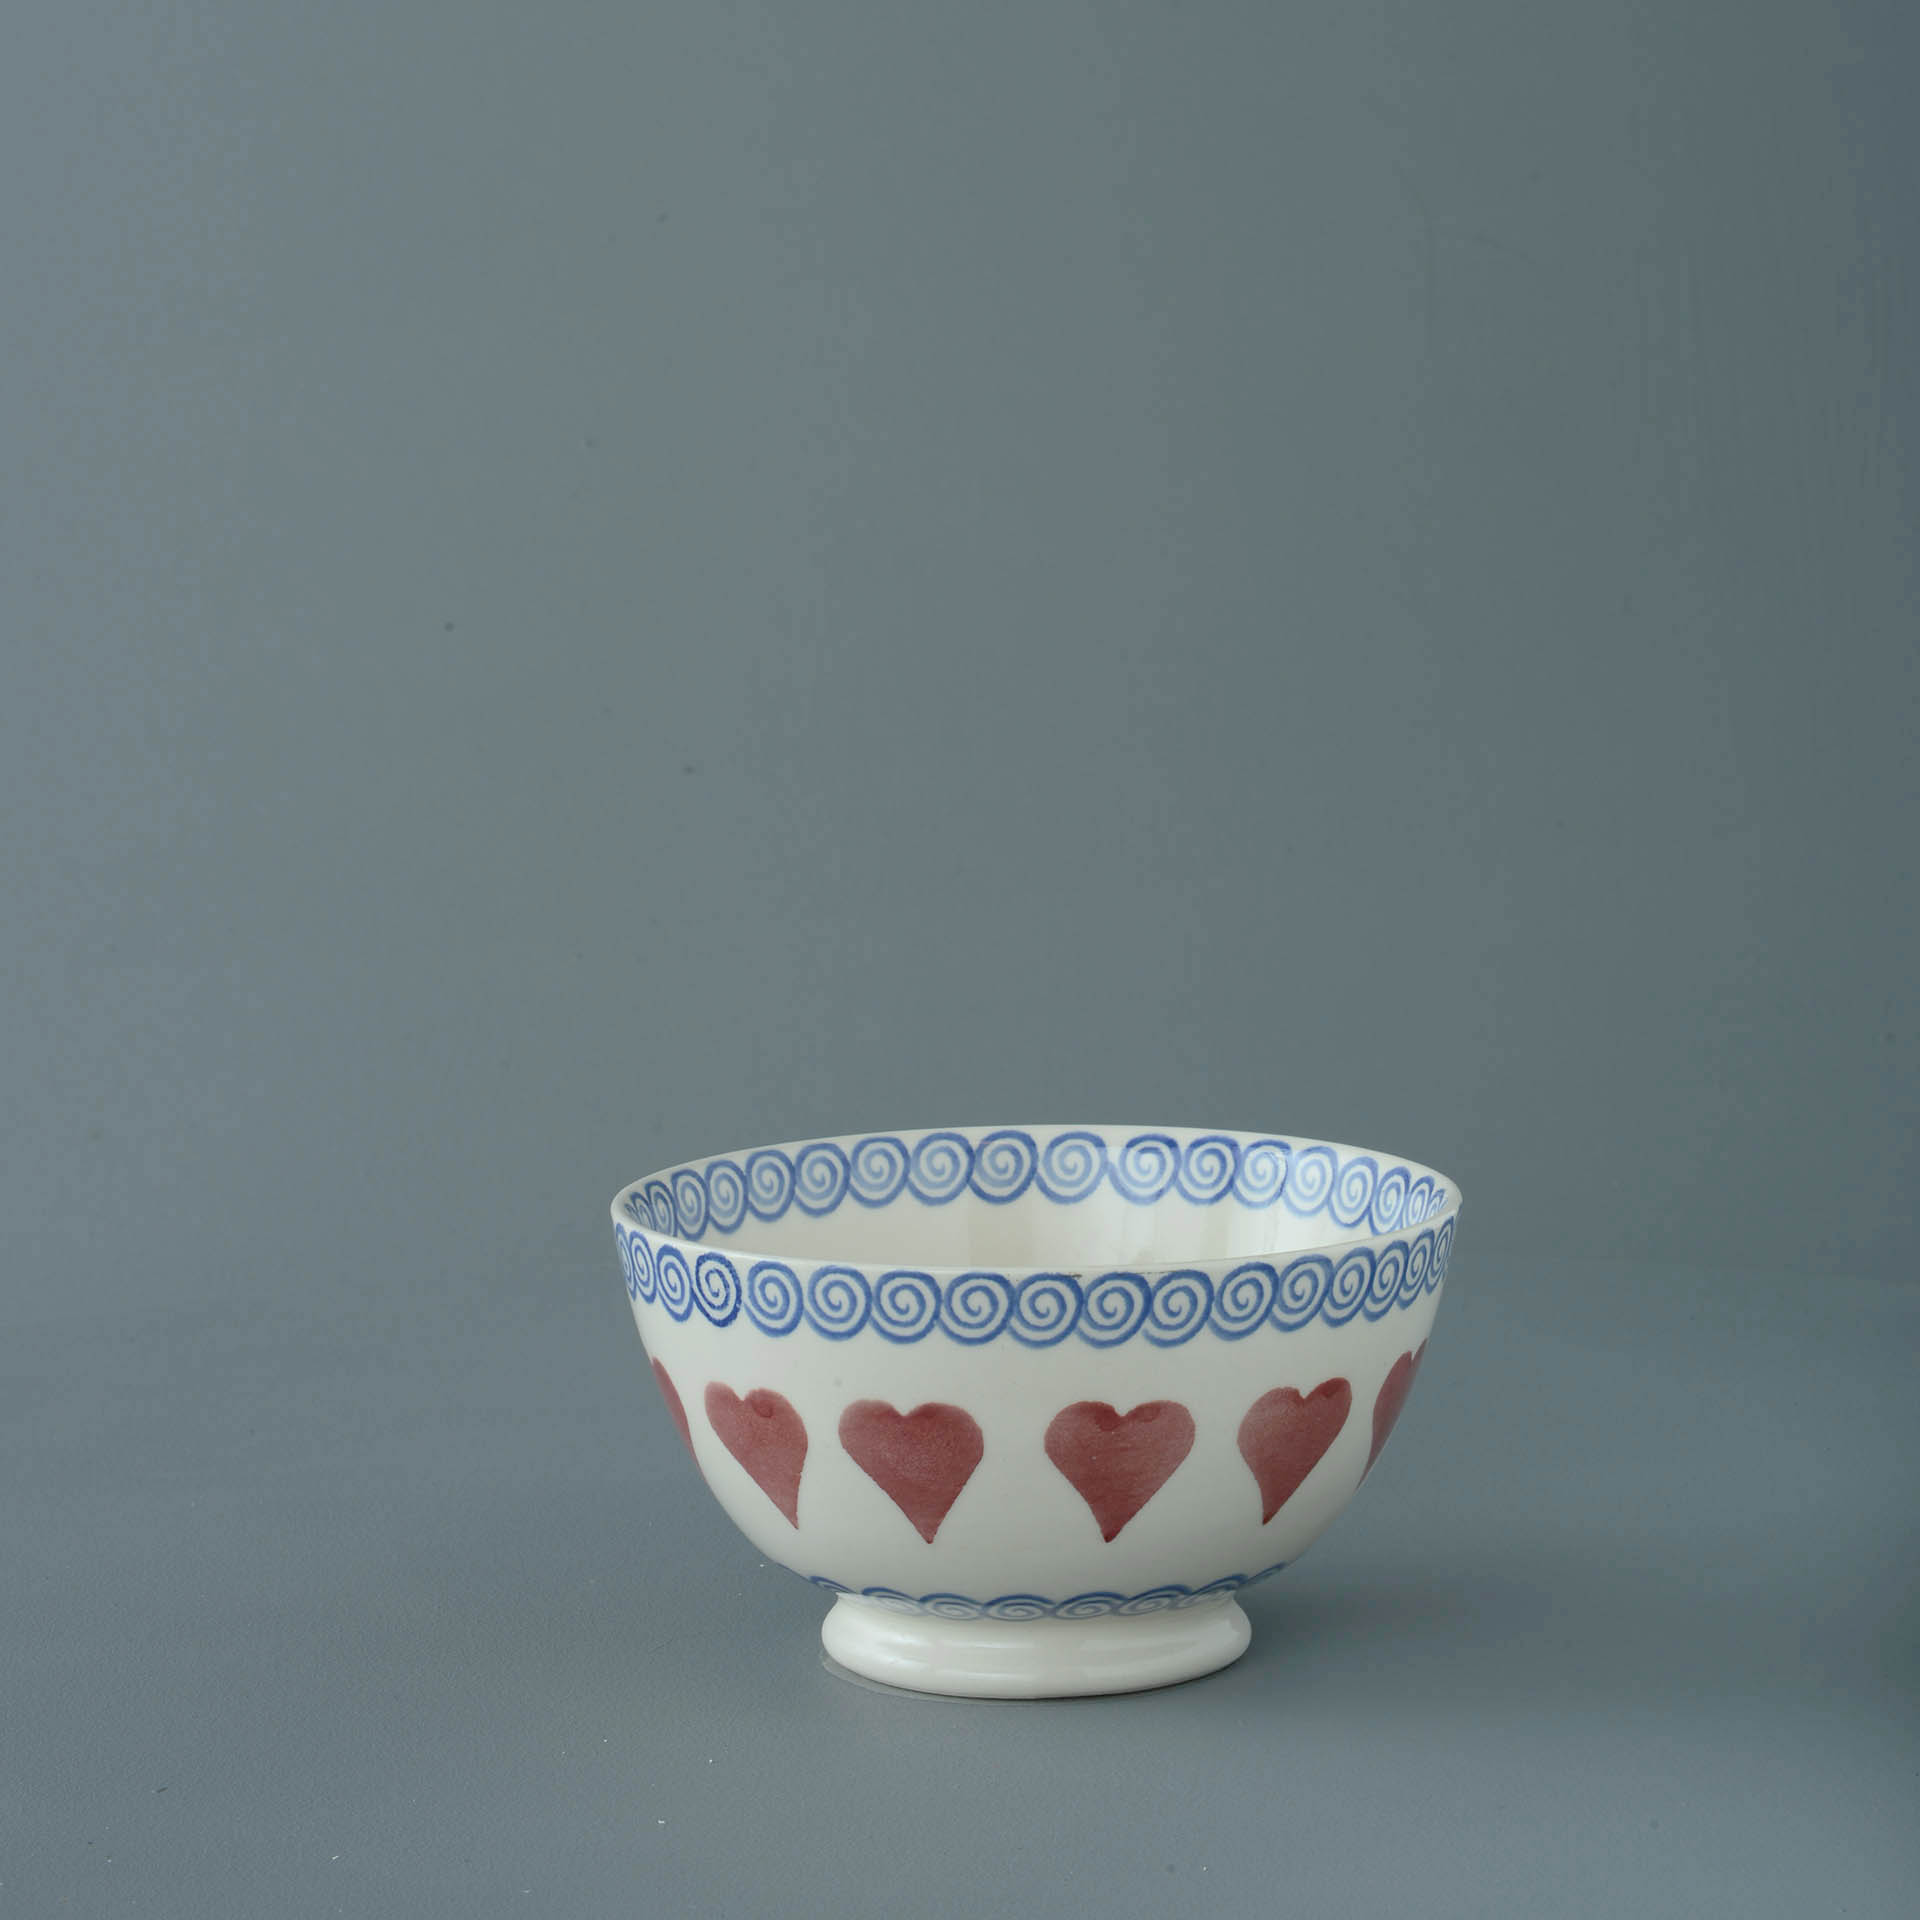 Hearts Cereal Bowl 7 x 13cm